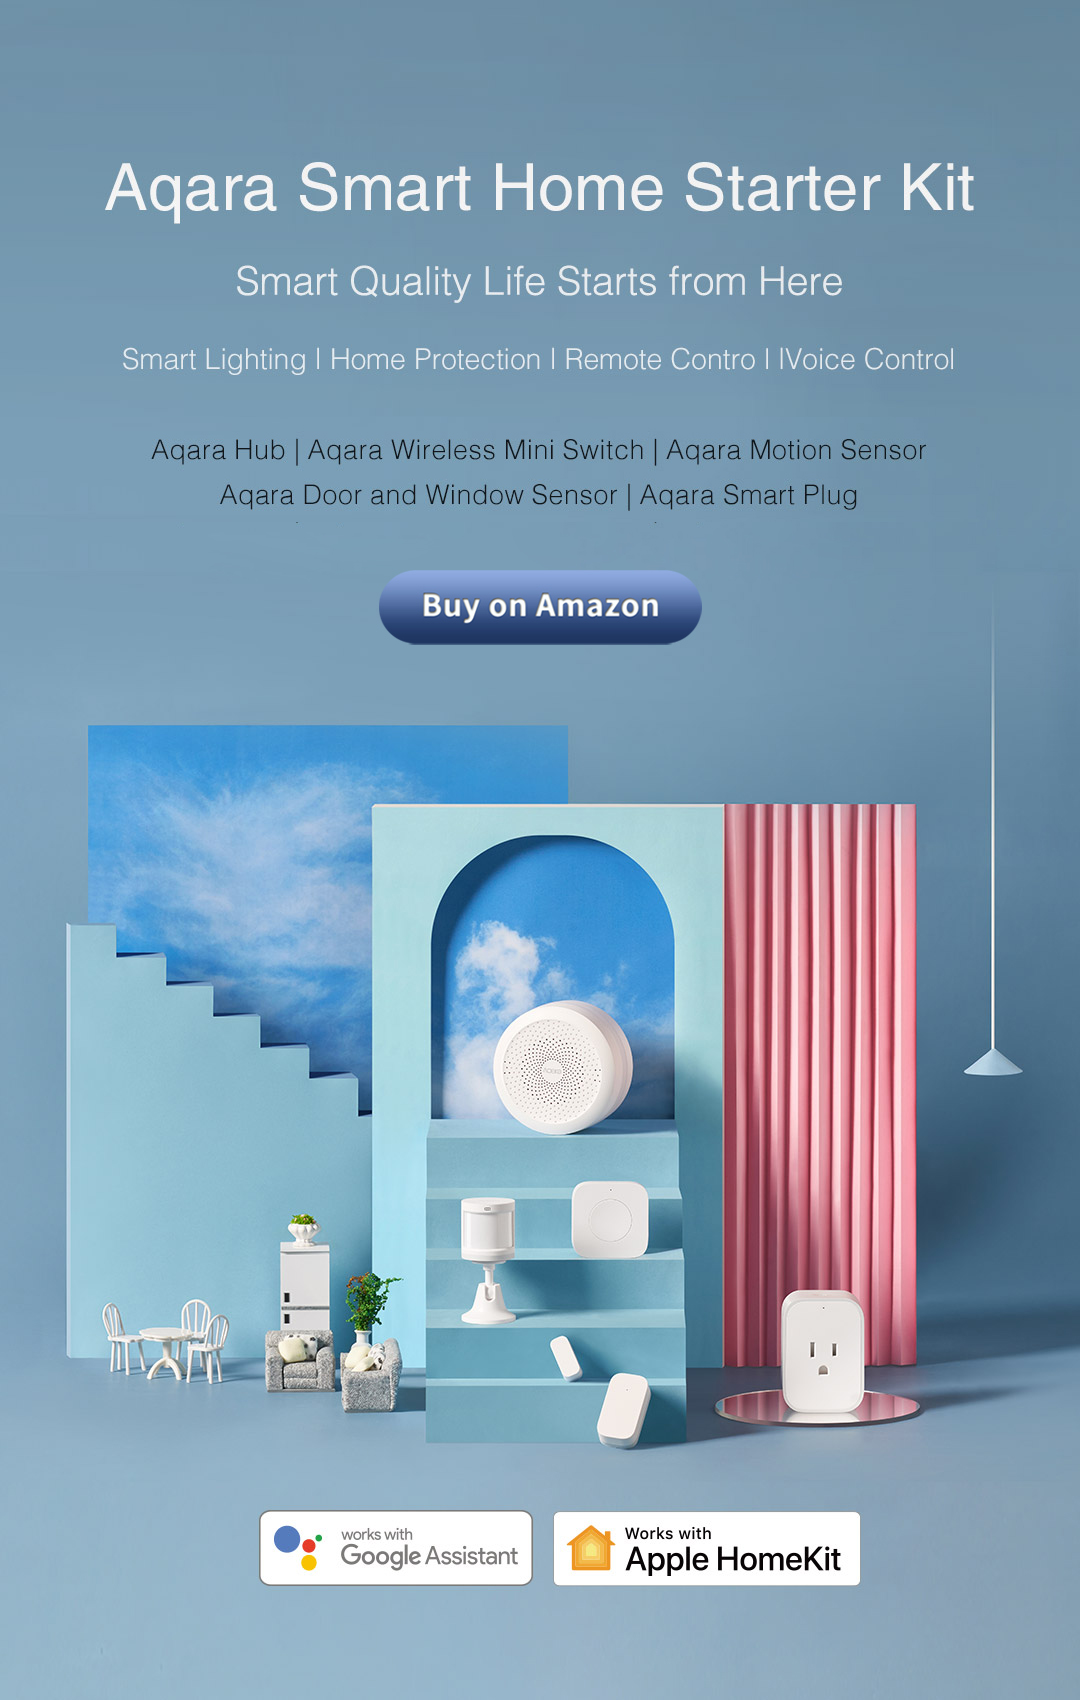 Aqara Smart Home Starter Kit - Smart Quality Life Starts from Here